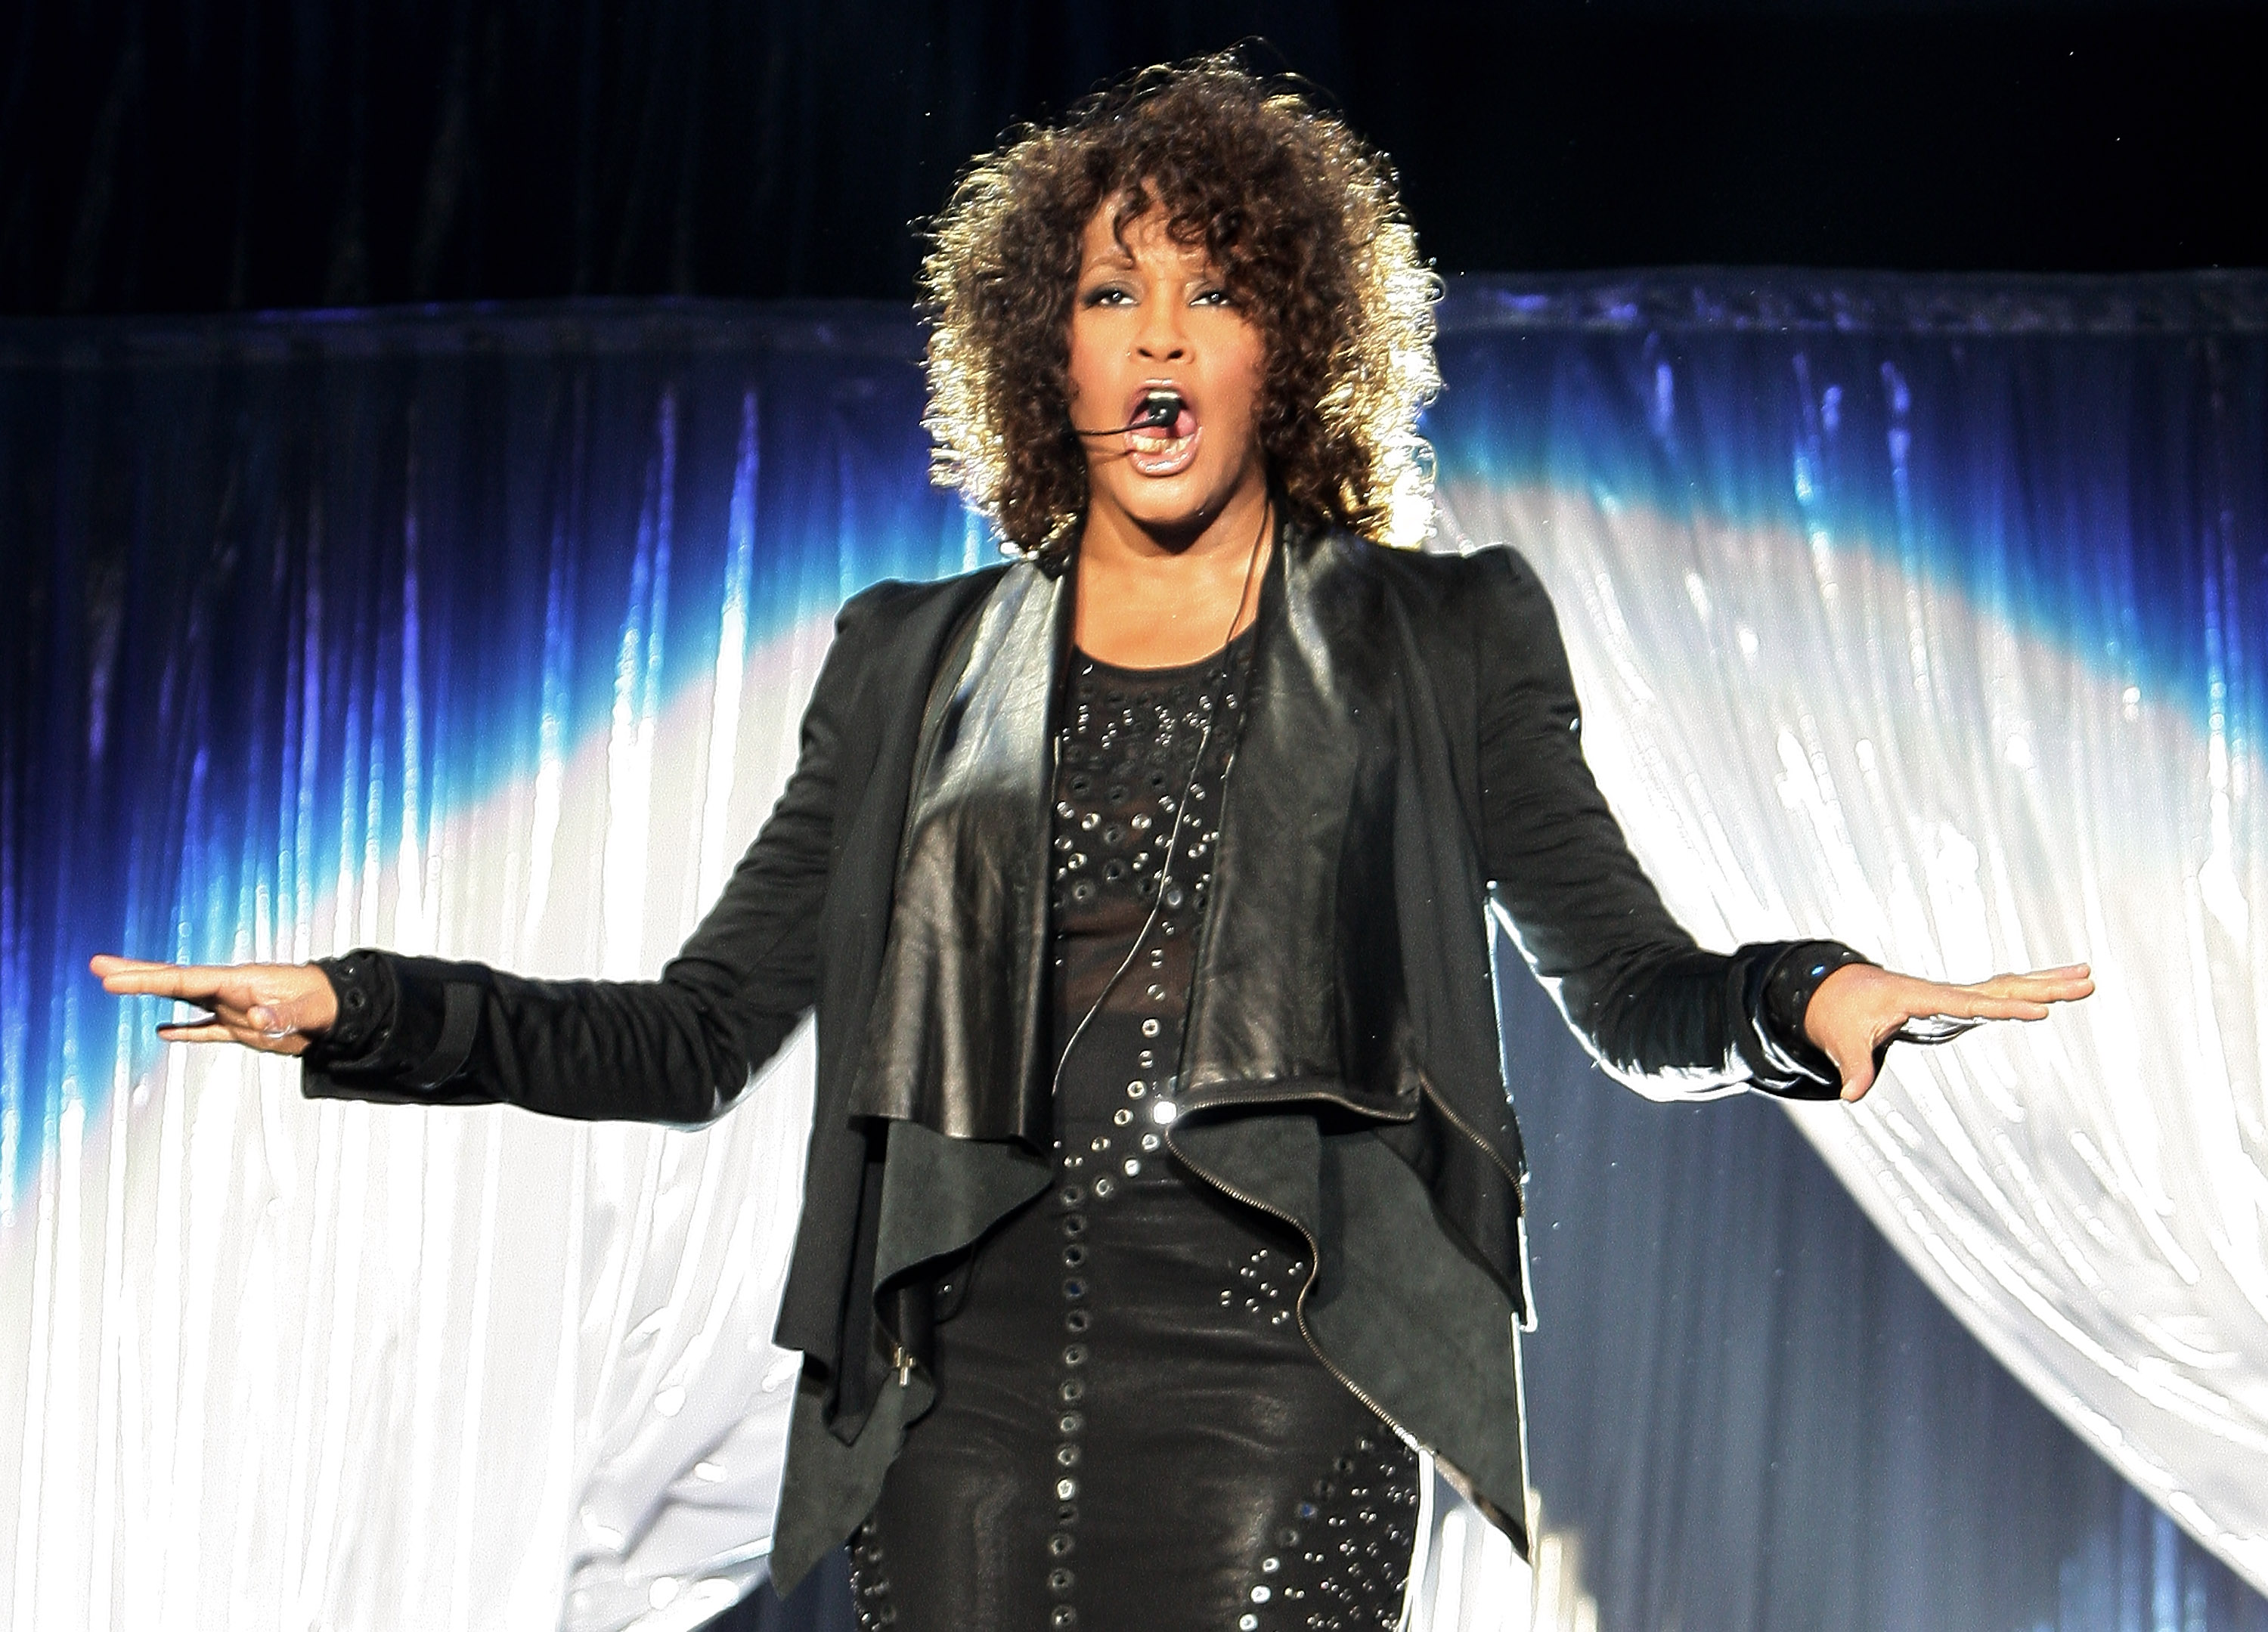 Should you really trust music documentaries as new Whitney Houston film on 'true story' nears release?